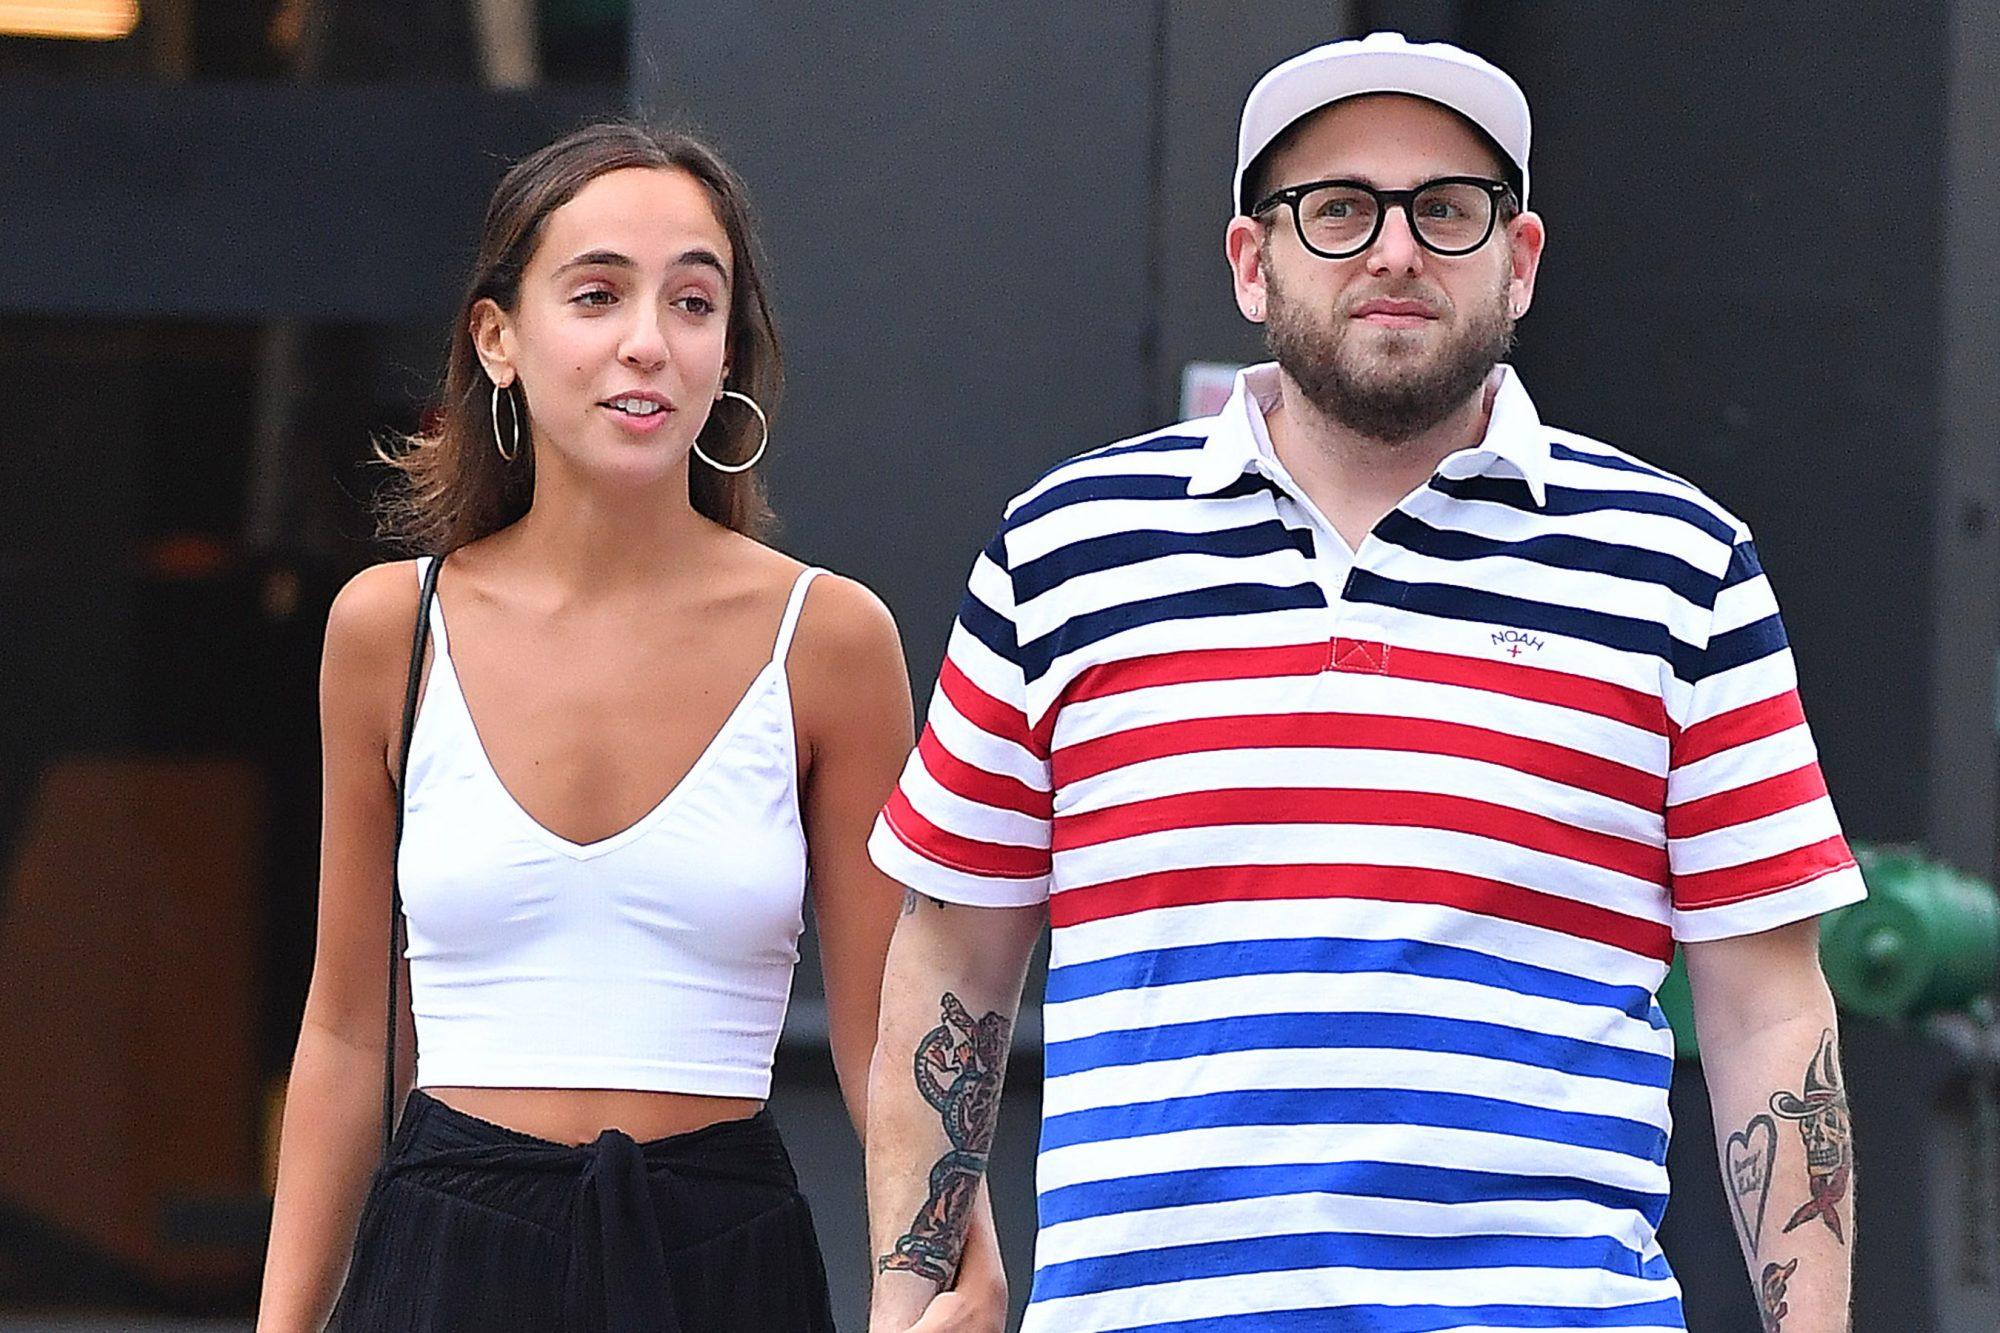 Jonah Hill and Gianna Santos